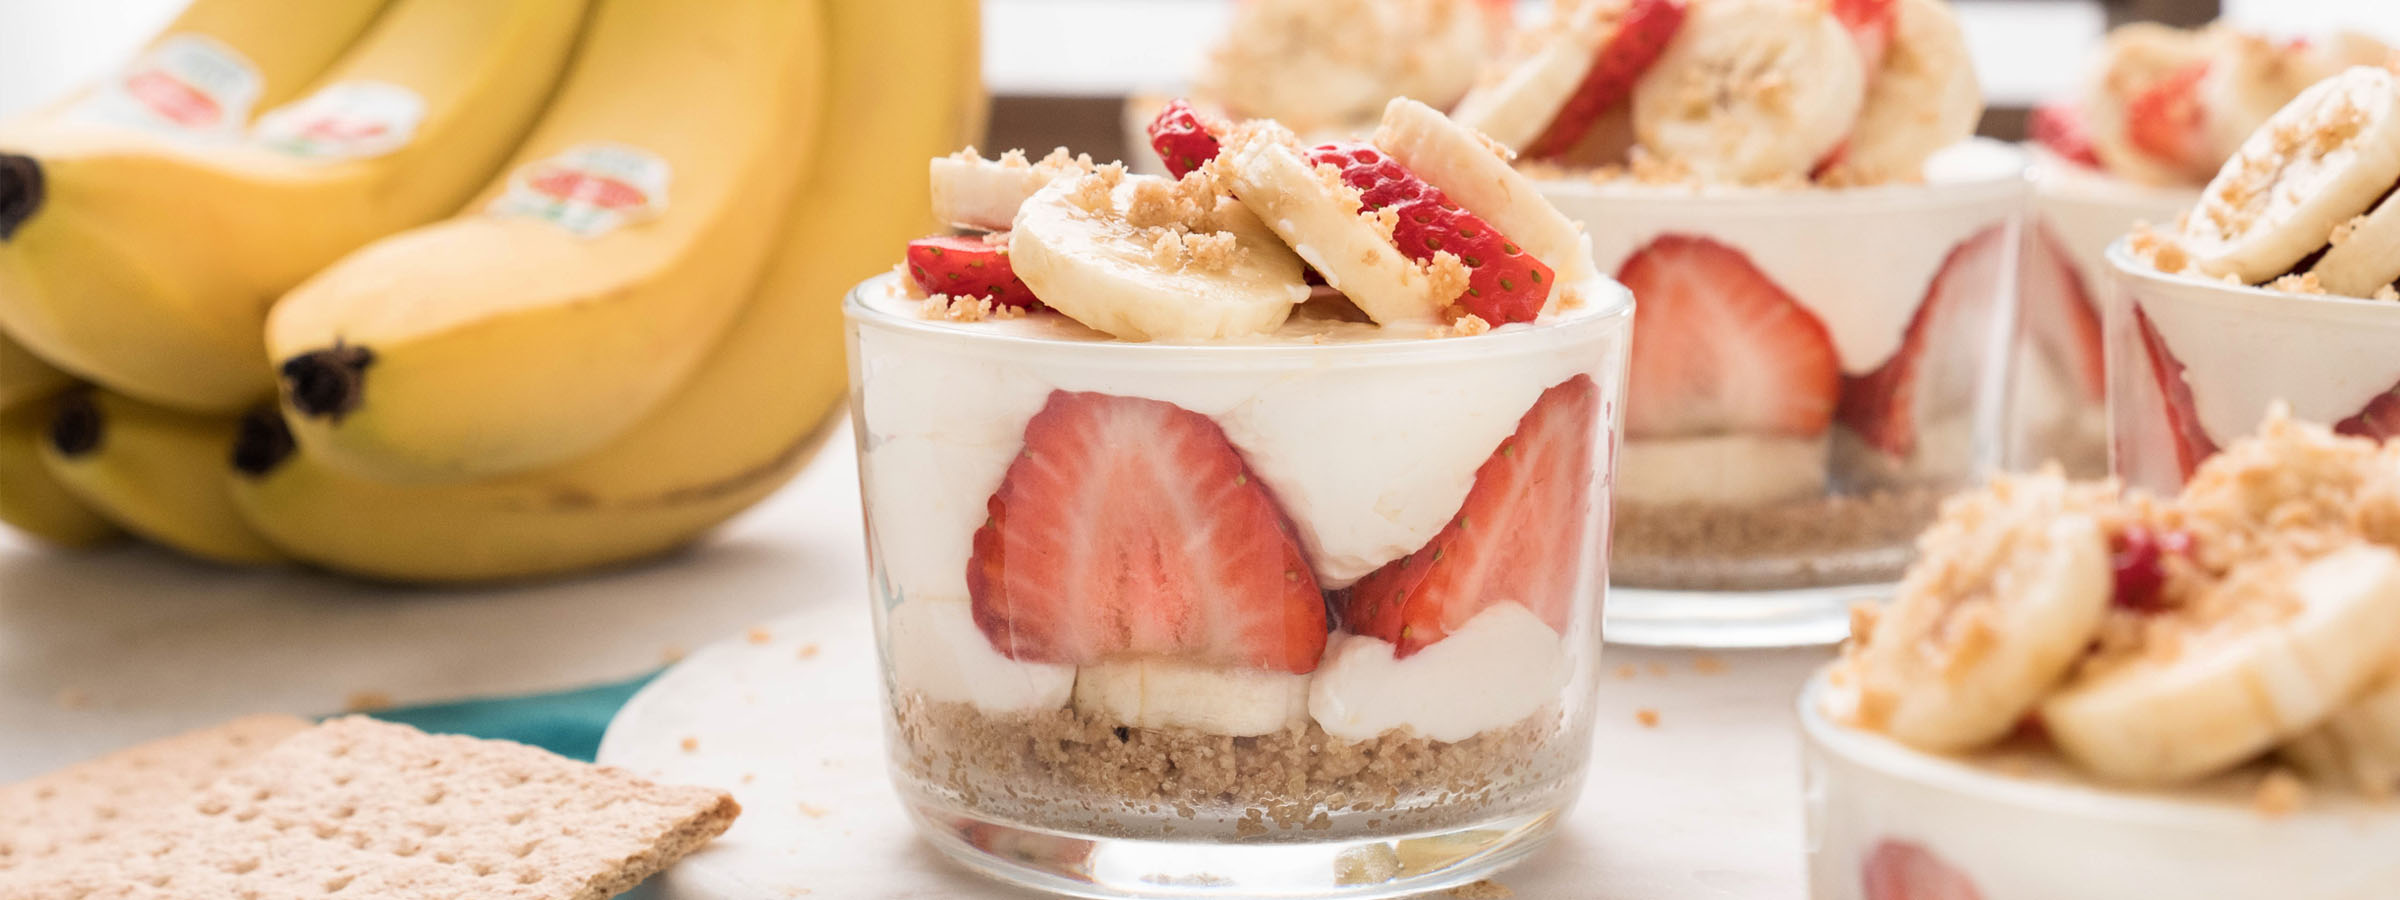 No-Bake-Strawberry-Banana-Cheesecakes_Fruits.com_